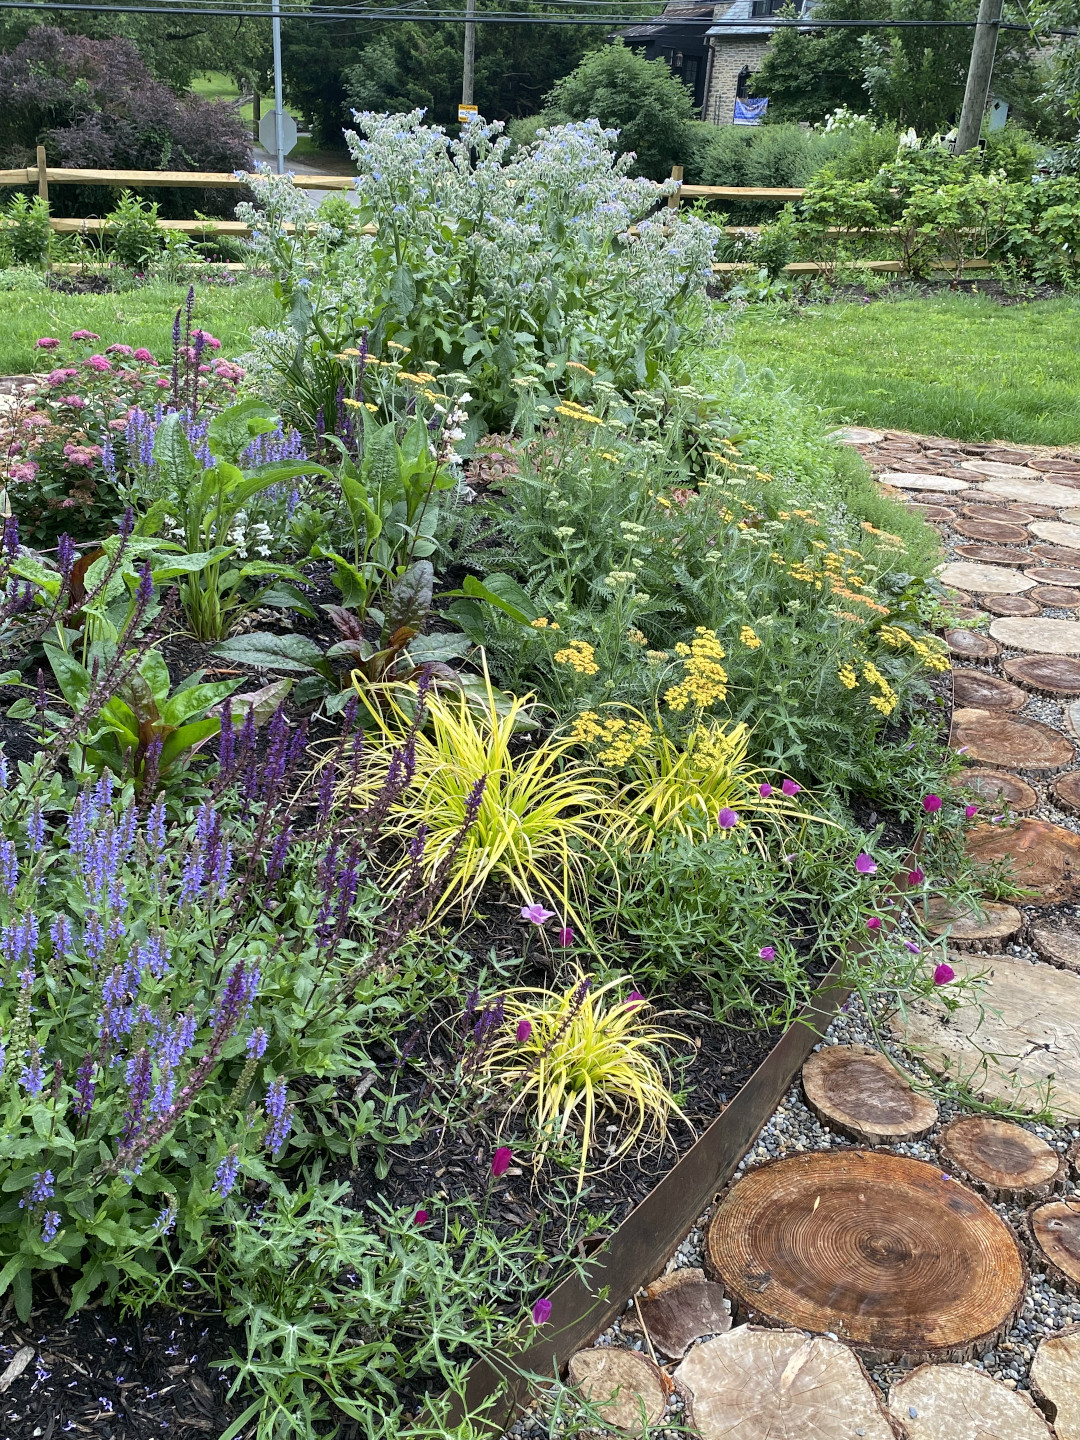 Mounded garden with flowering plants growing on it